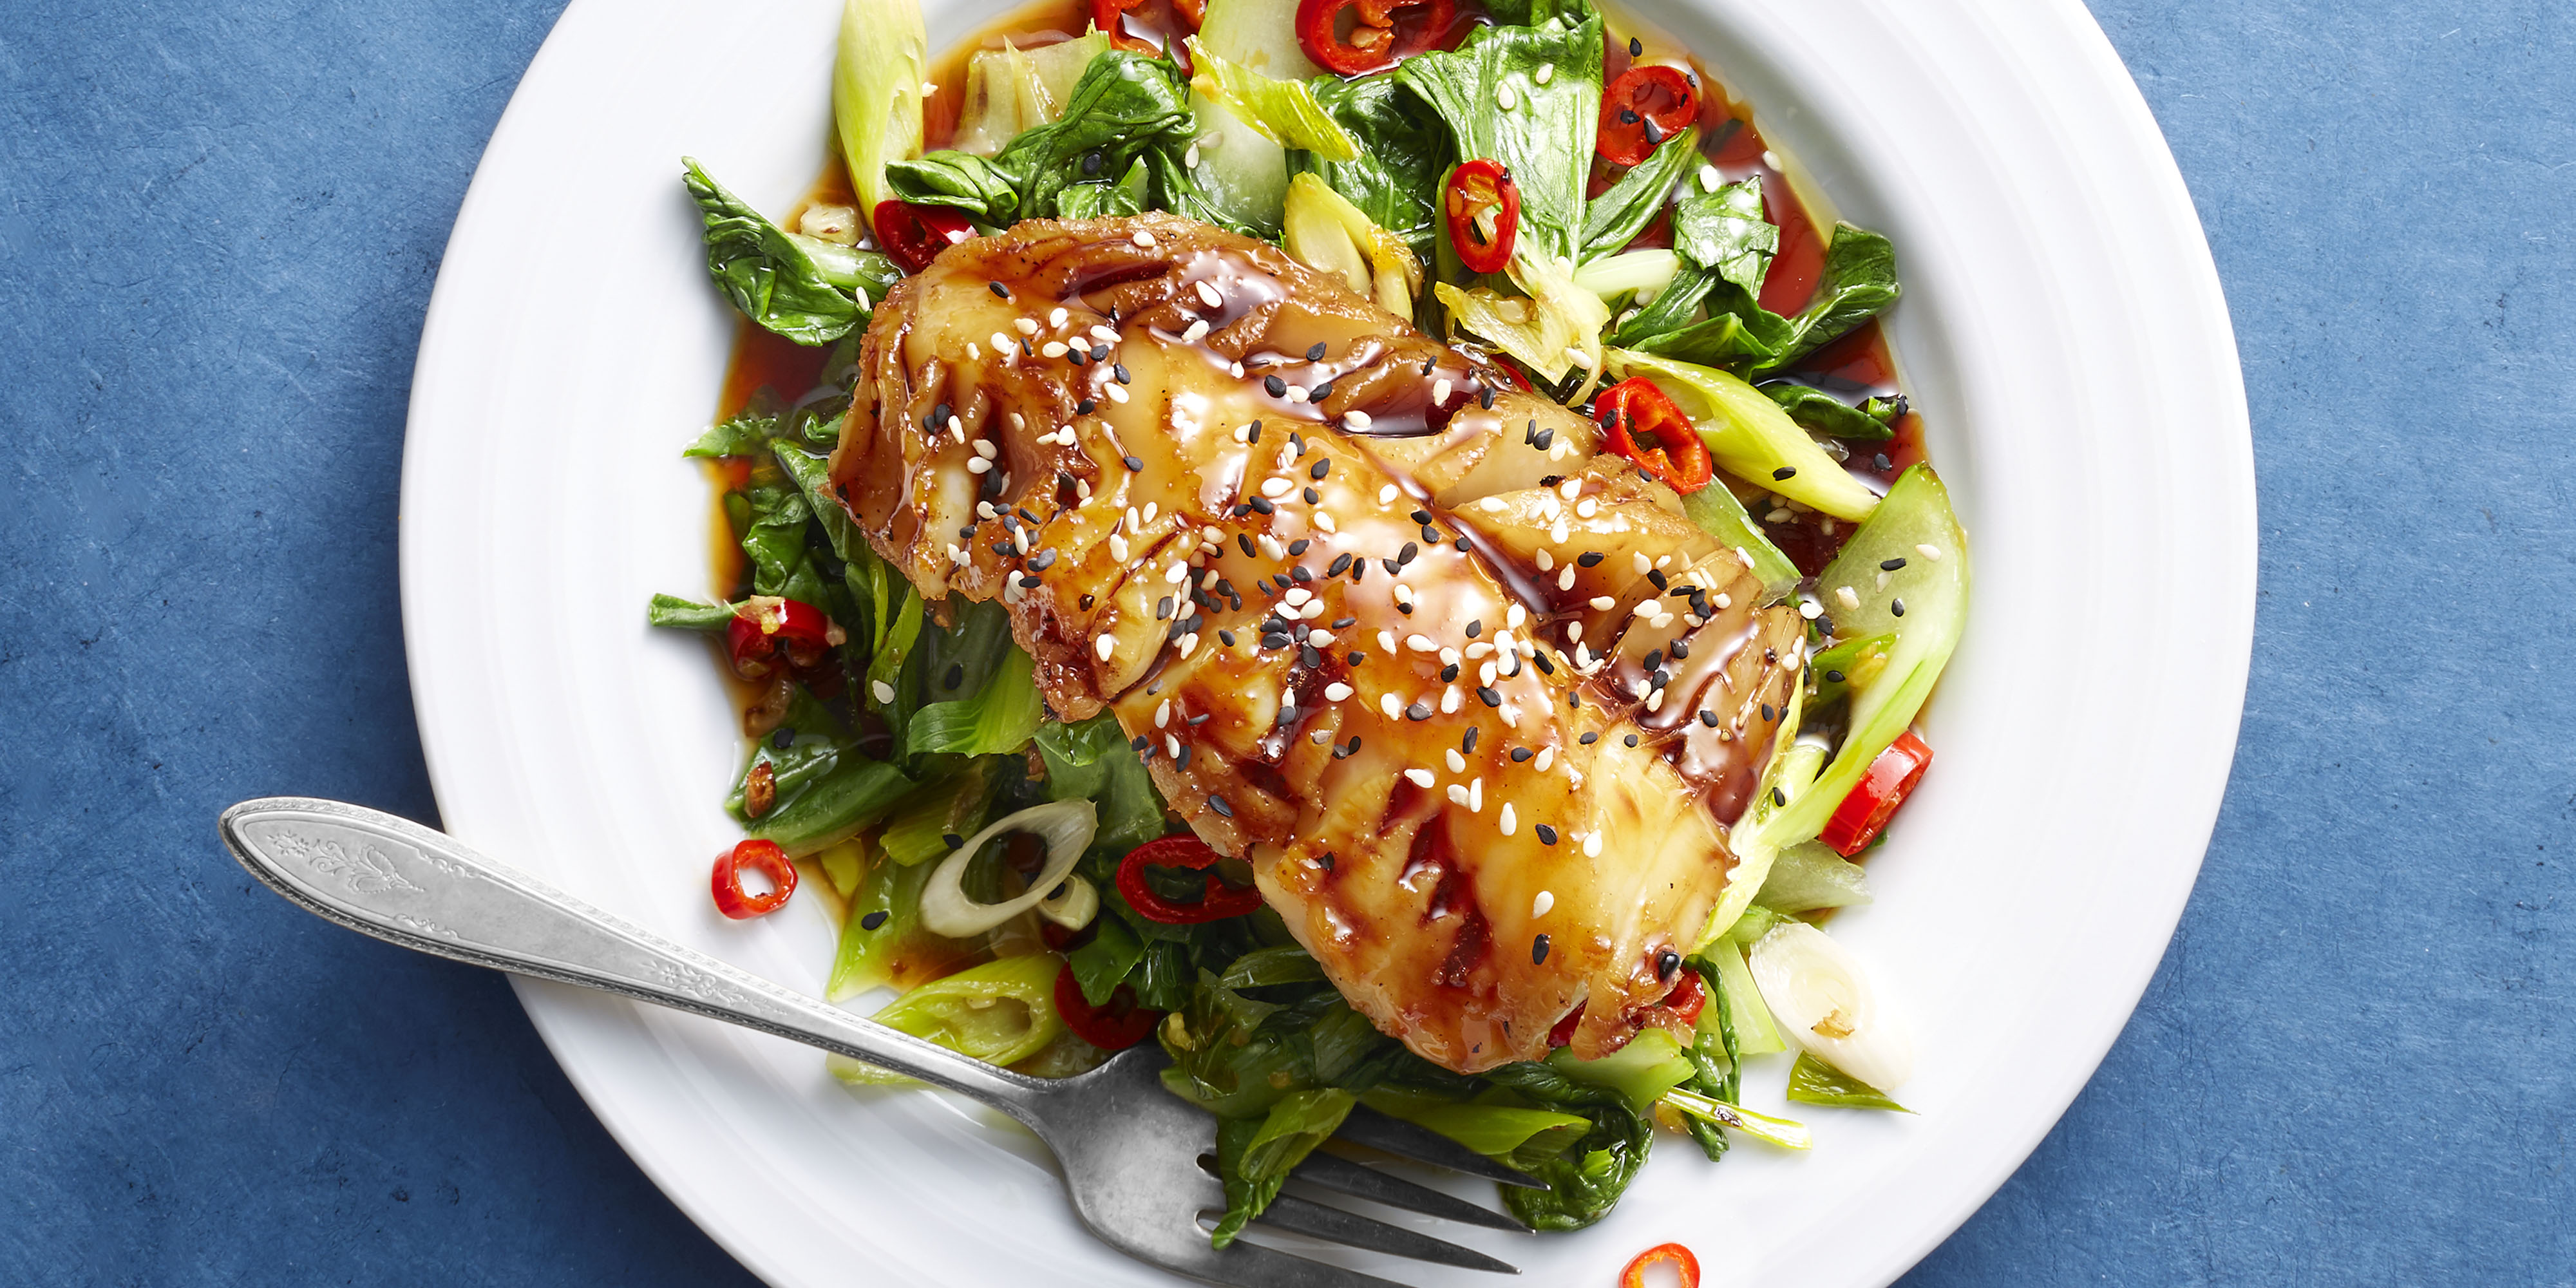 28 Easy Low Calorie Meals Healthy Dinner Recipes Under 350 Calories